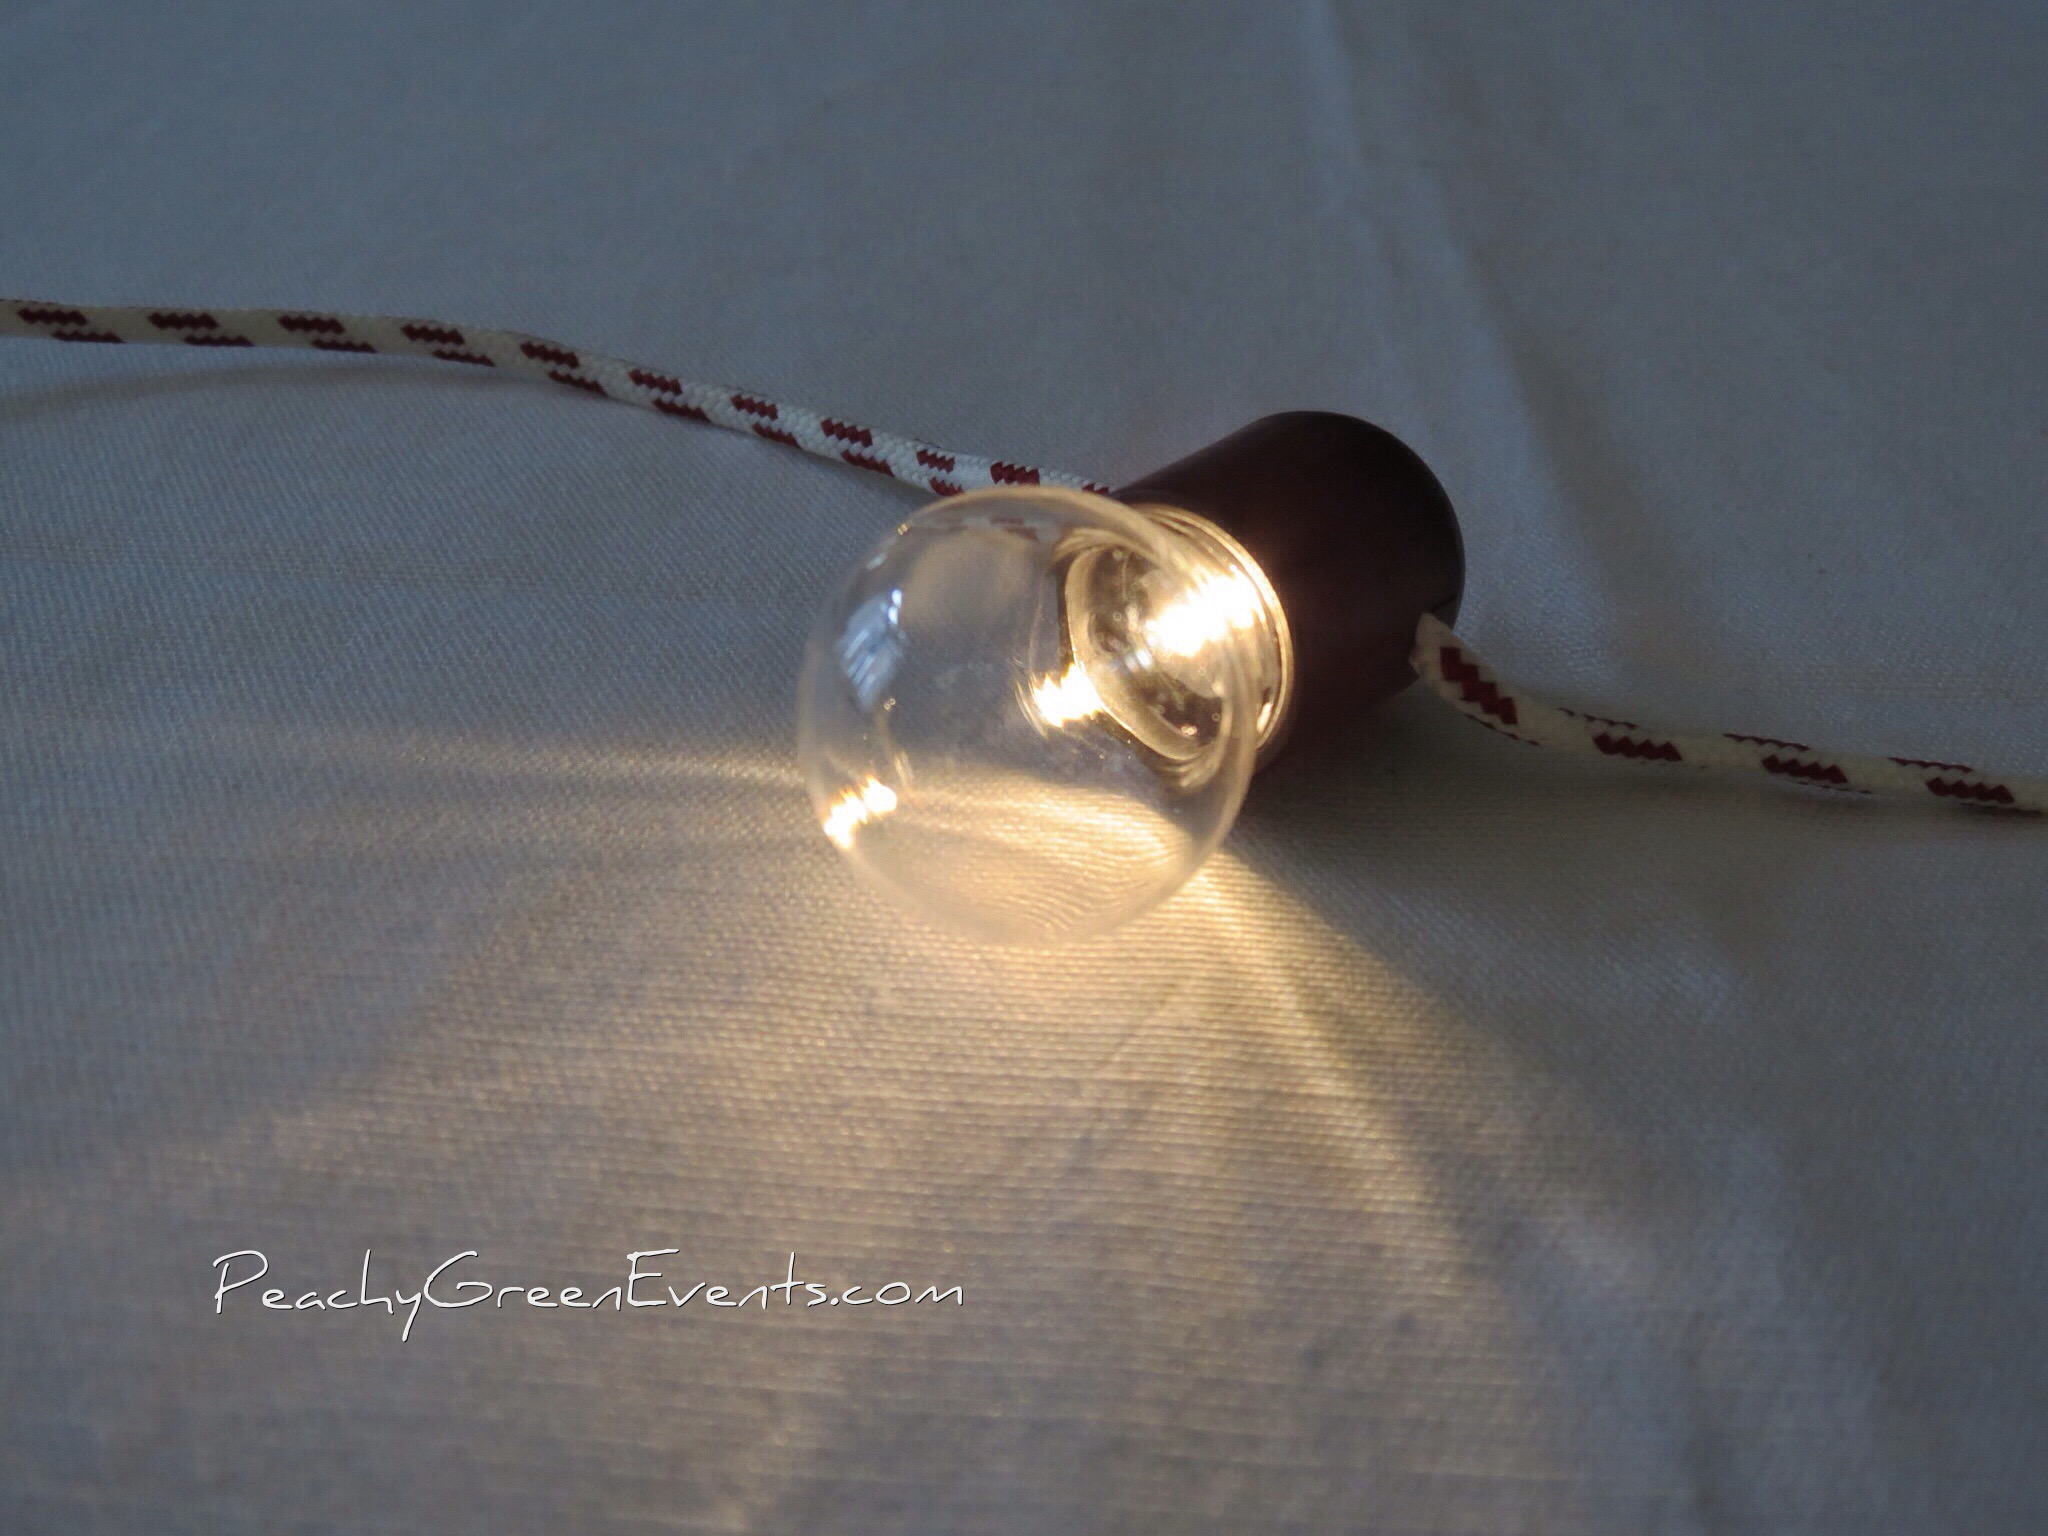 Cafe String Lights Battery Operated : Vintage Style Small LED String Lights, Battery Operated Peachy Green Events & Rentals